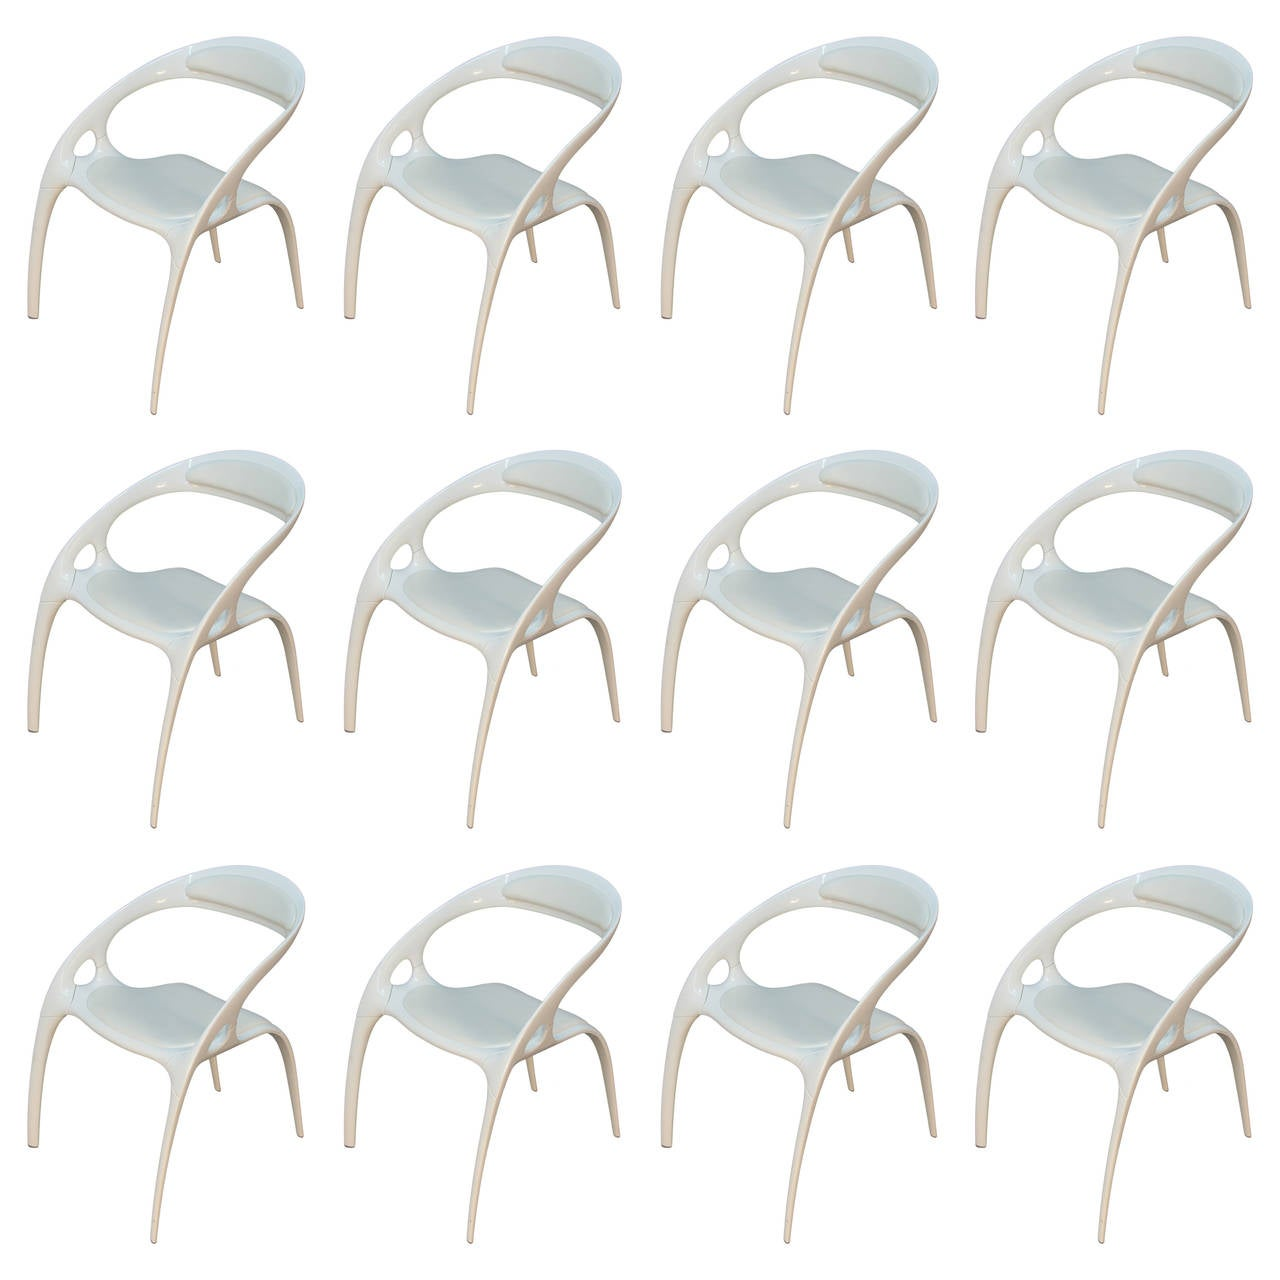 set of 12 ross lovegrove go chairs for bernhardt at 1stdibs